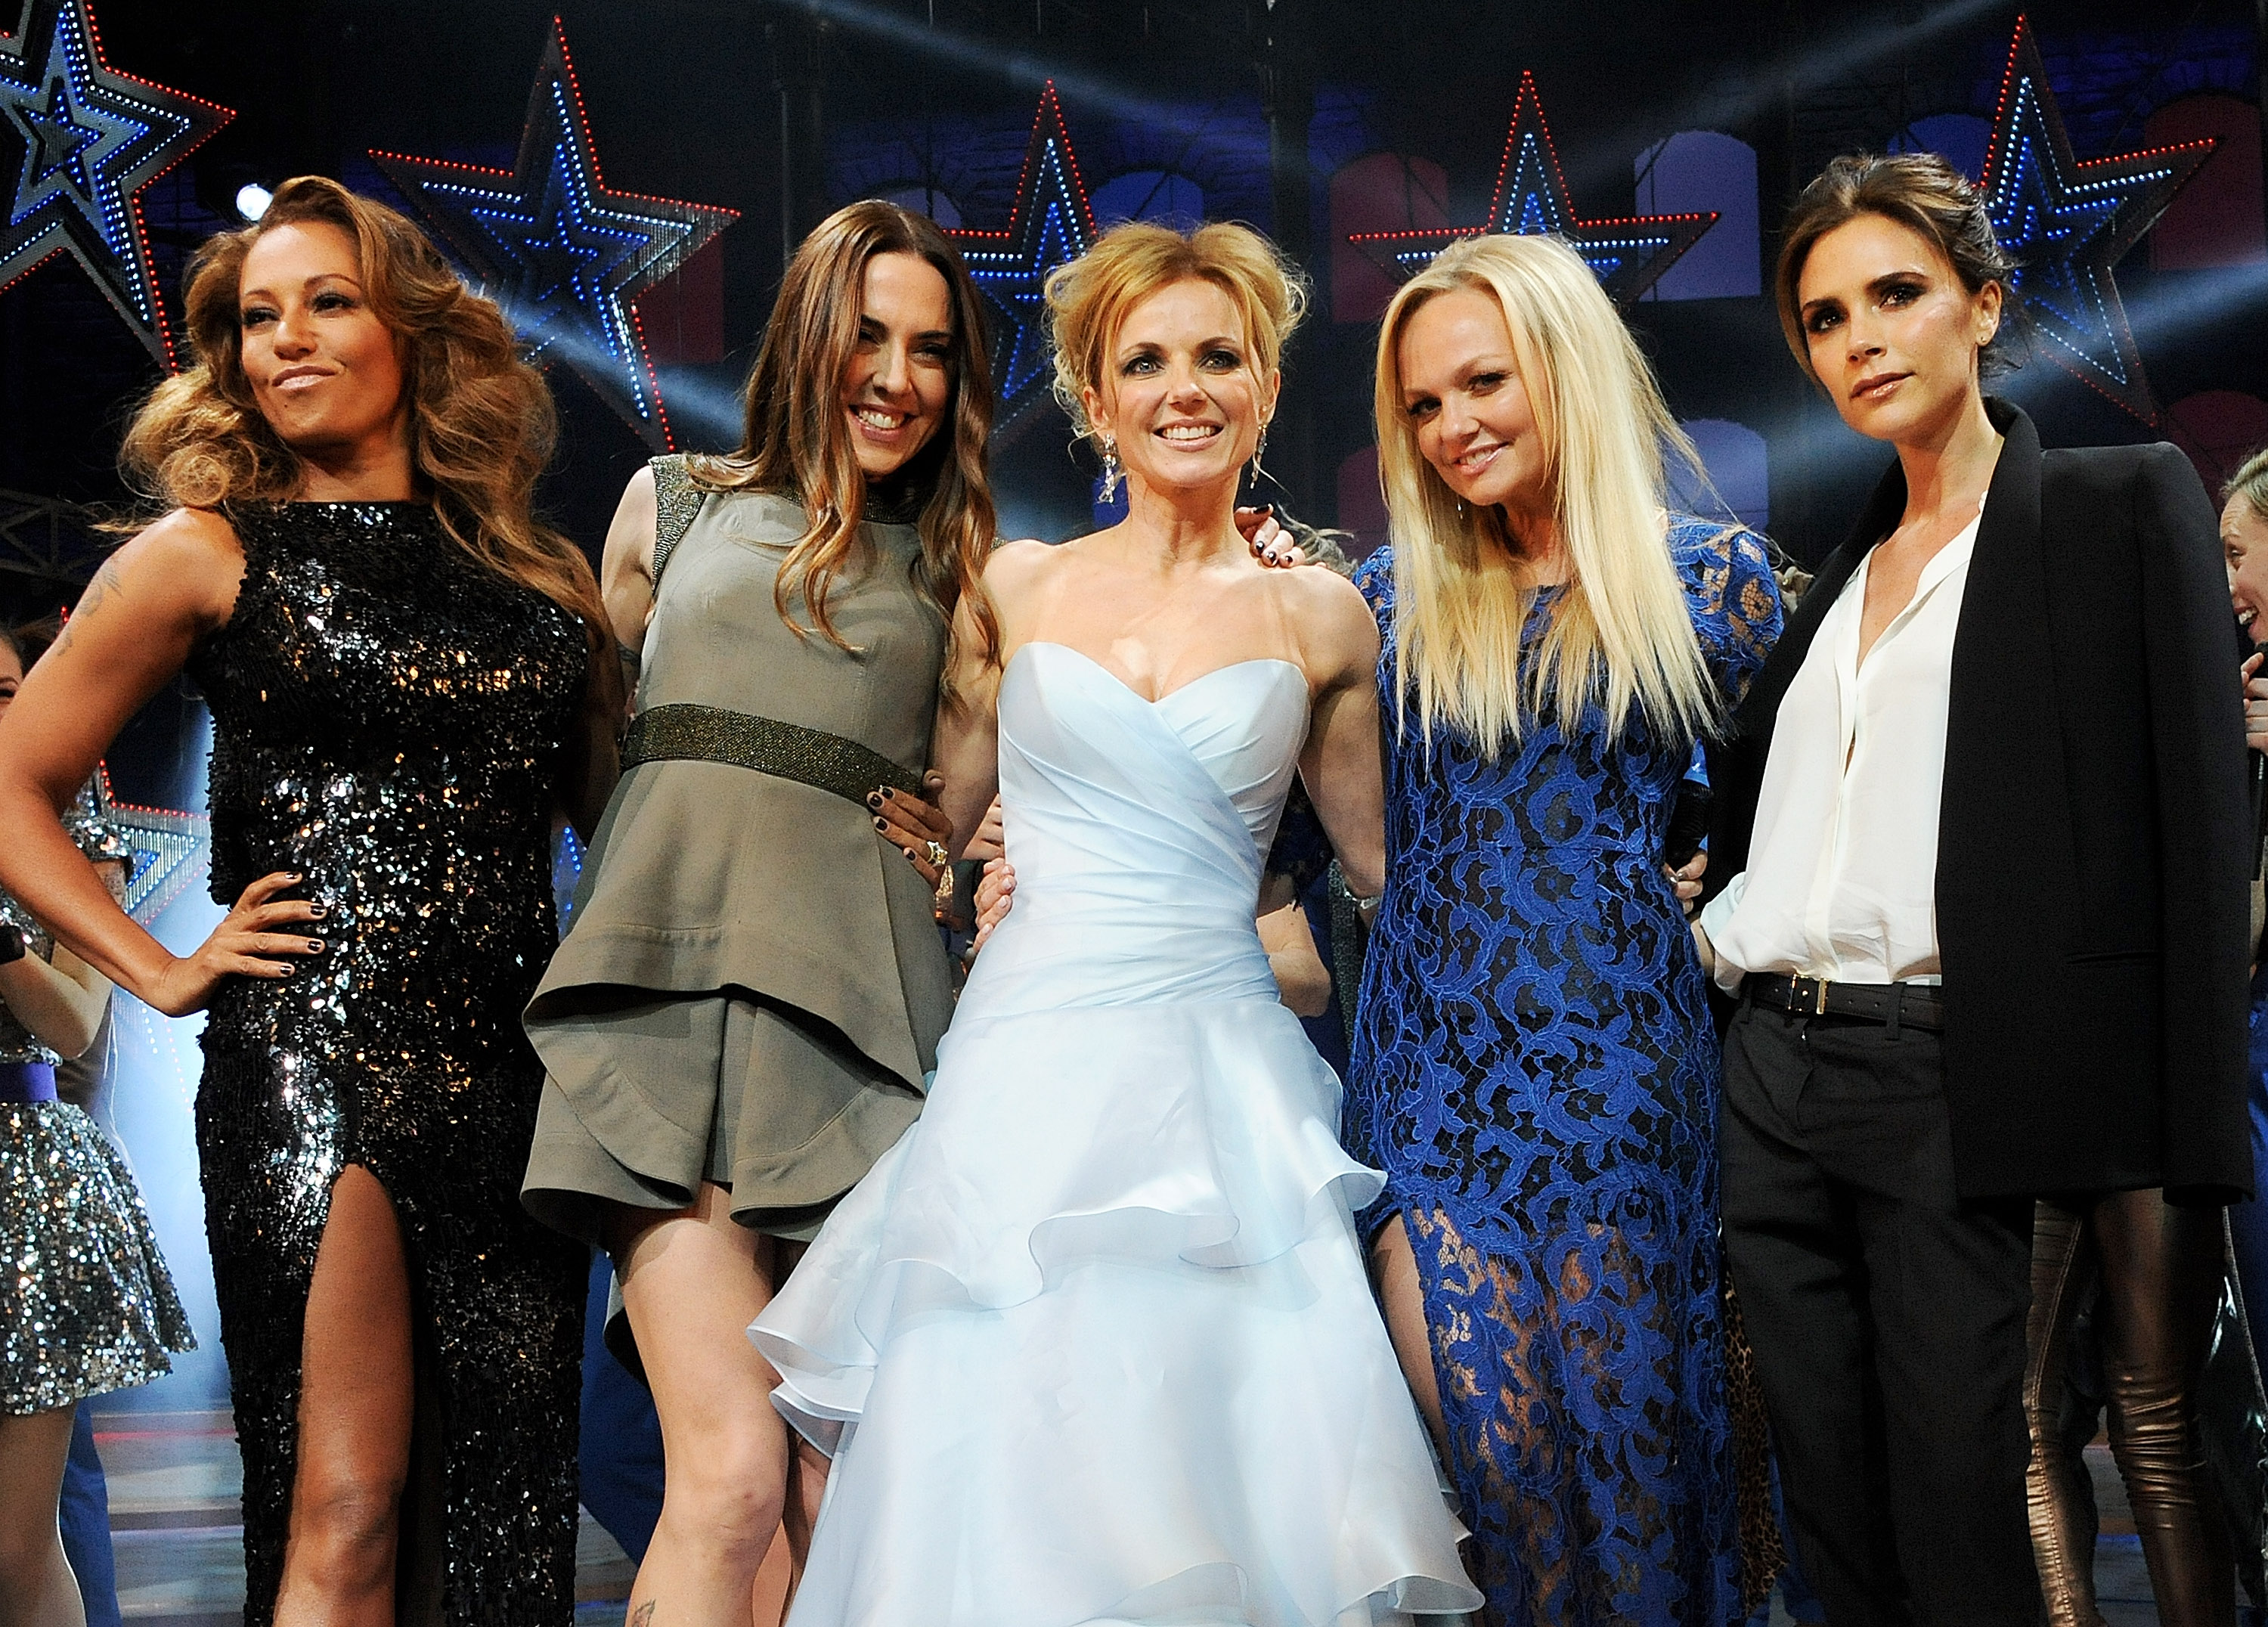 Melanie Brown, Melanie Chisholm, Geri Halliwell, Emma Bunton and Victoria Beckham bow at the curtain call during the Gala Press Night performance of 'Viva Forever' at the Piccadilly Theatre on December 11, 2012 in London, England.